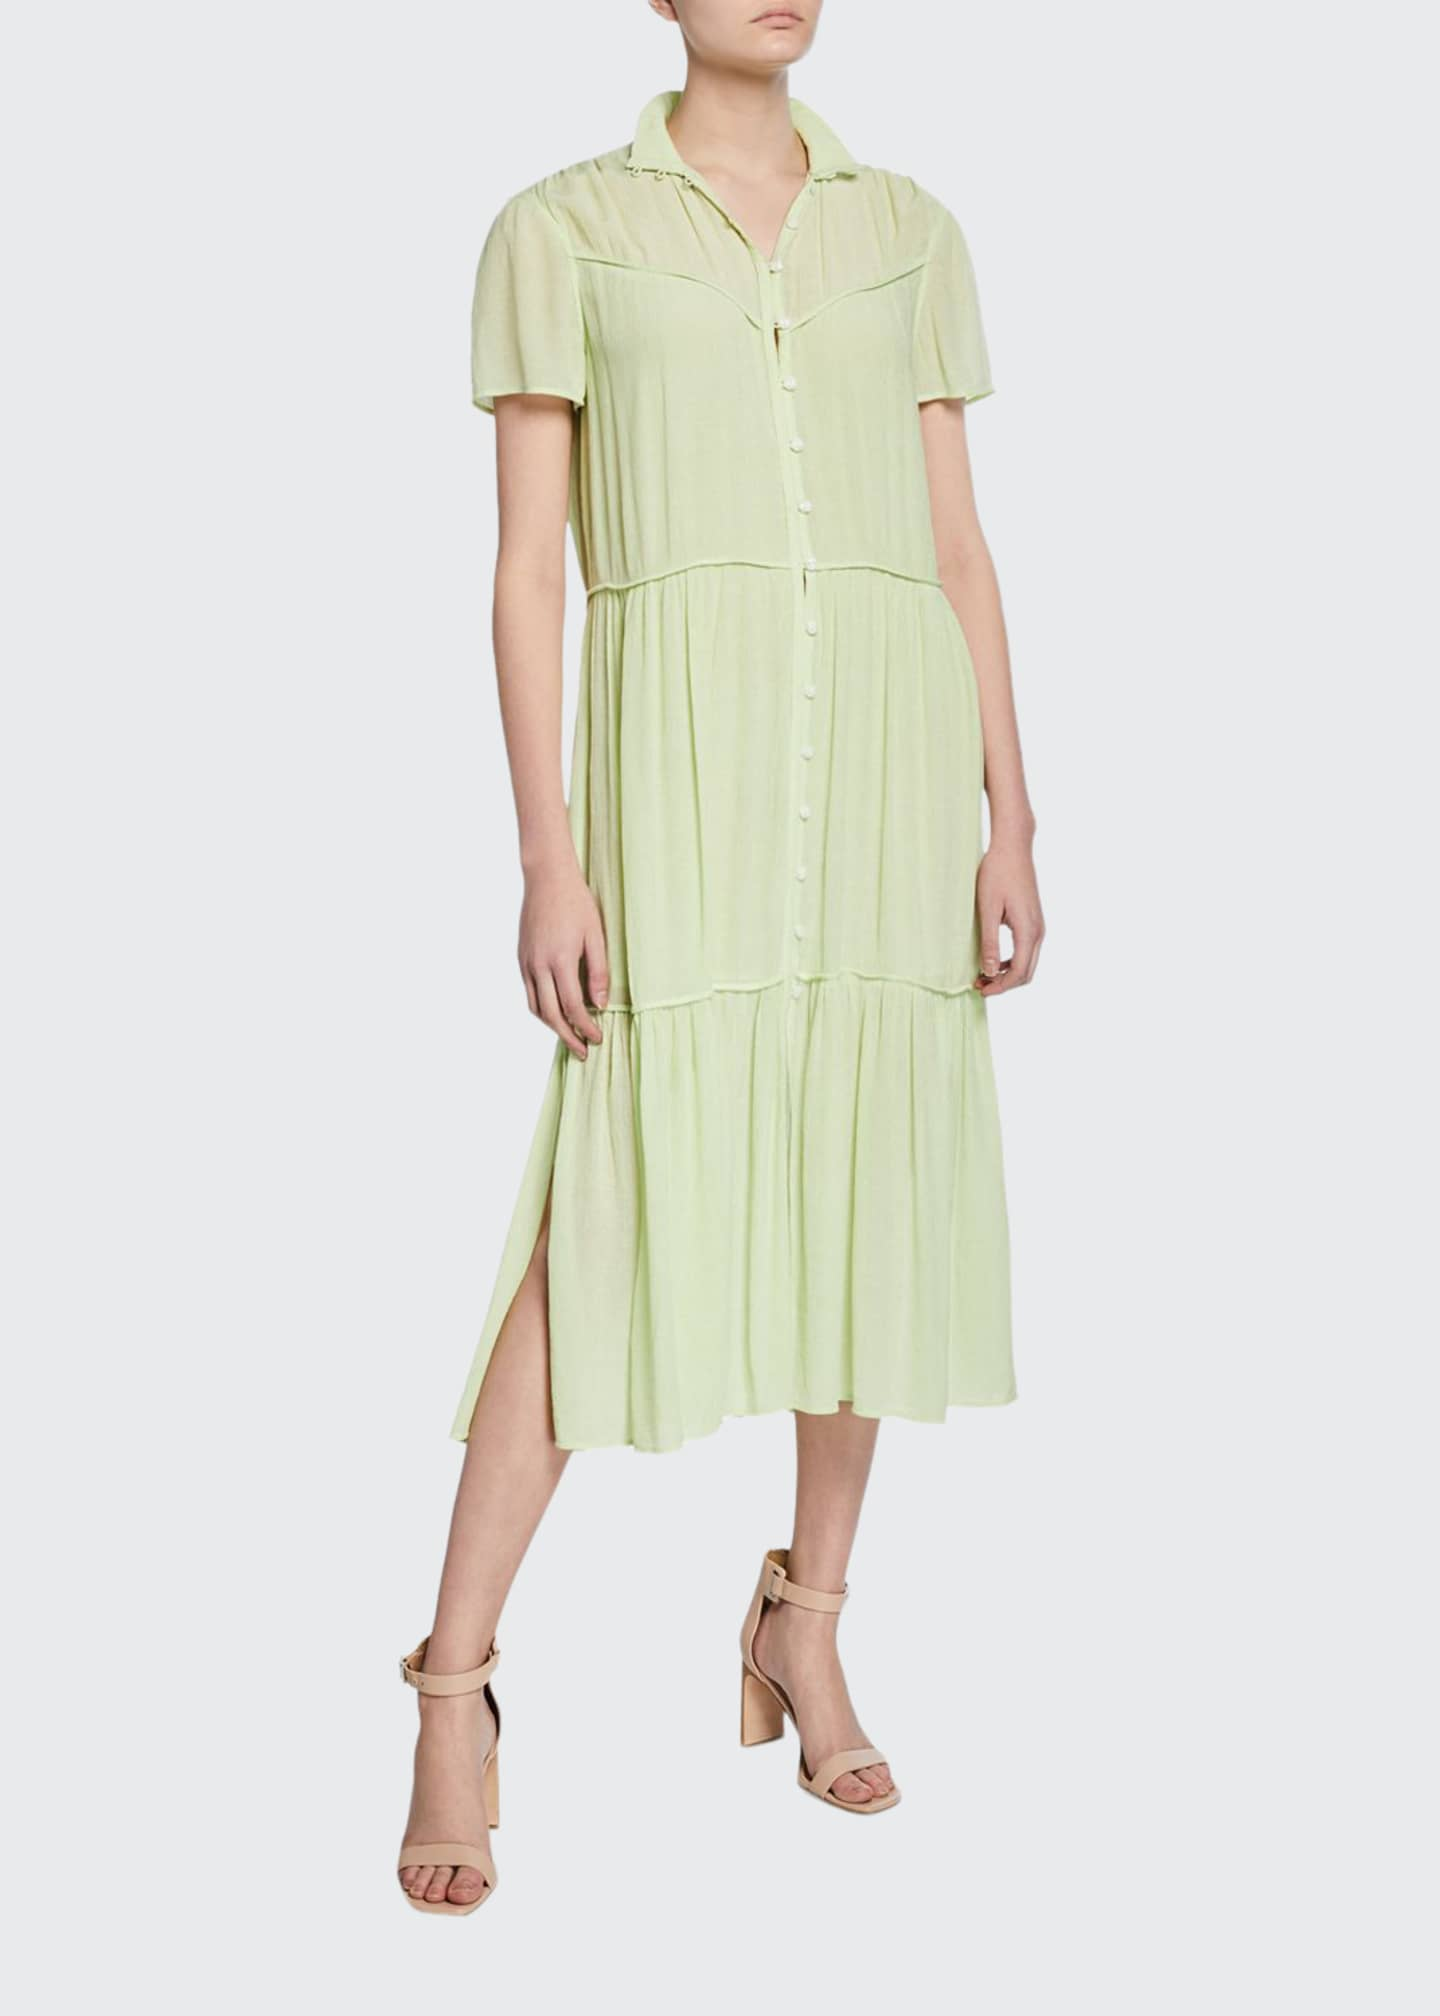 Rag & Bone Libby Tiered Seam Crinkle Dress